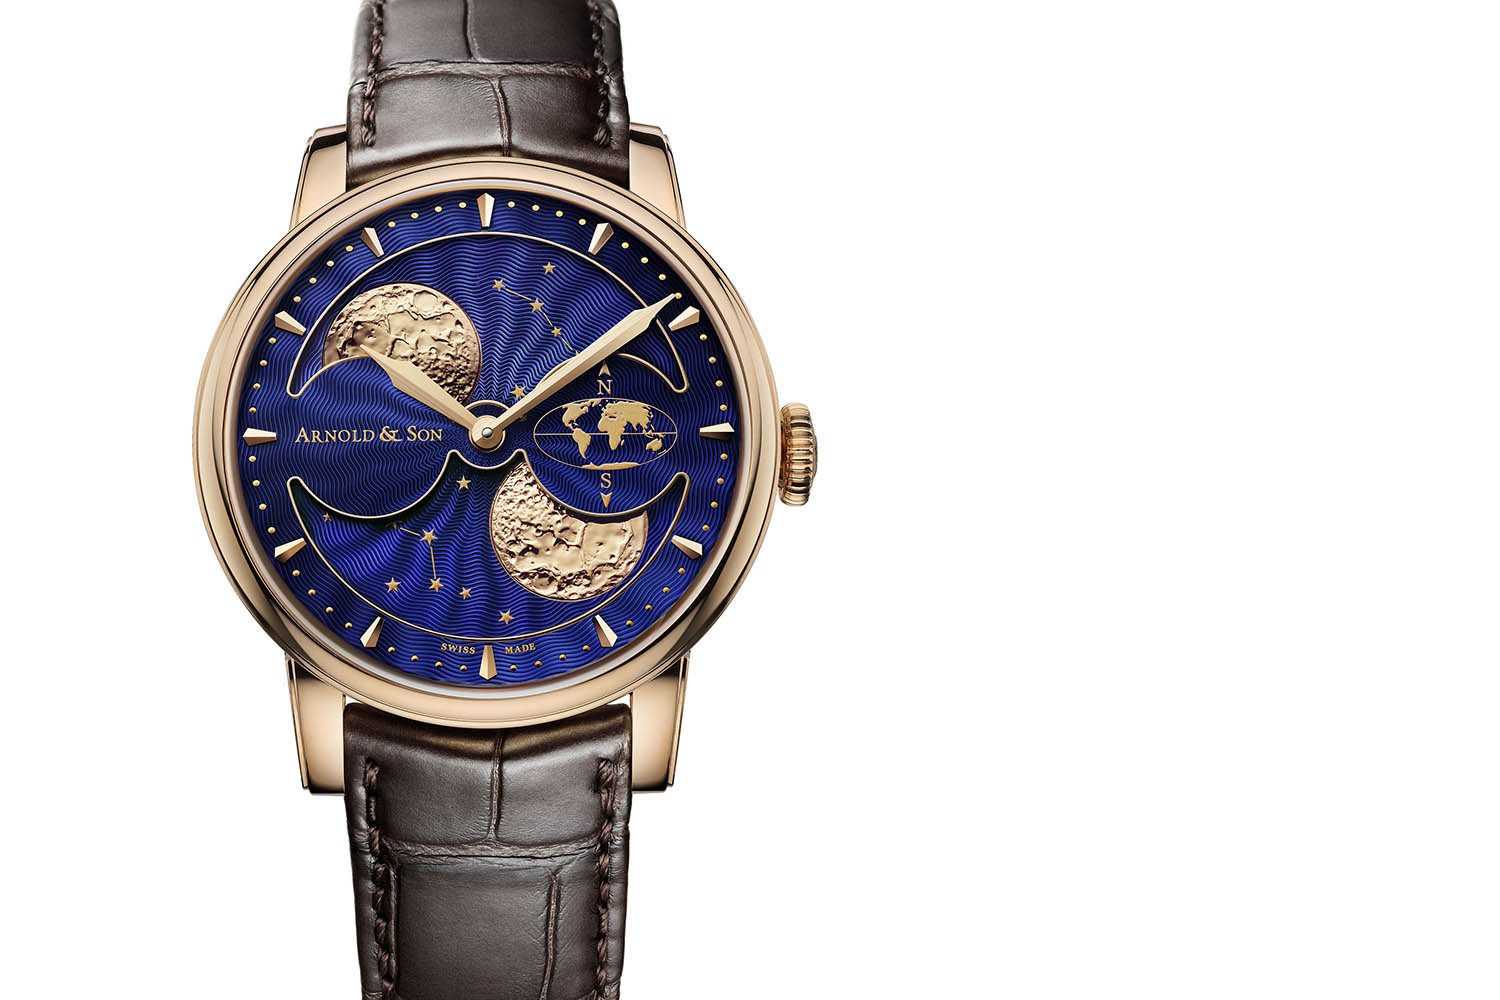 Arnold & Son HM Double Hemisphere Perpetual Moon - 4